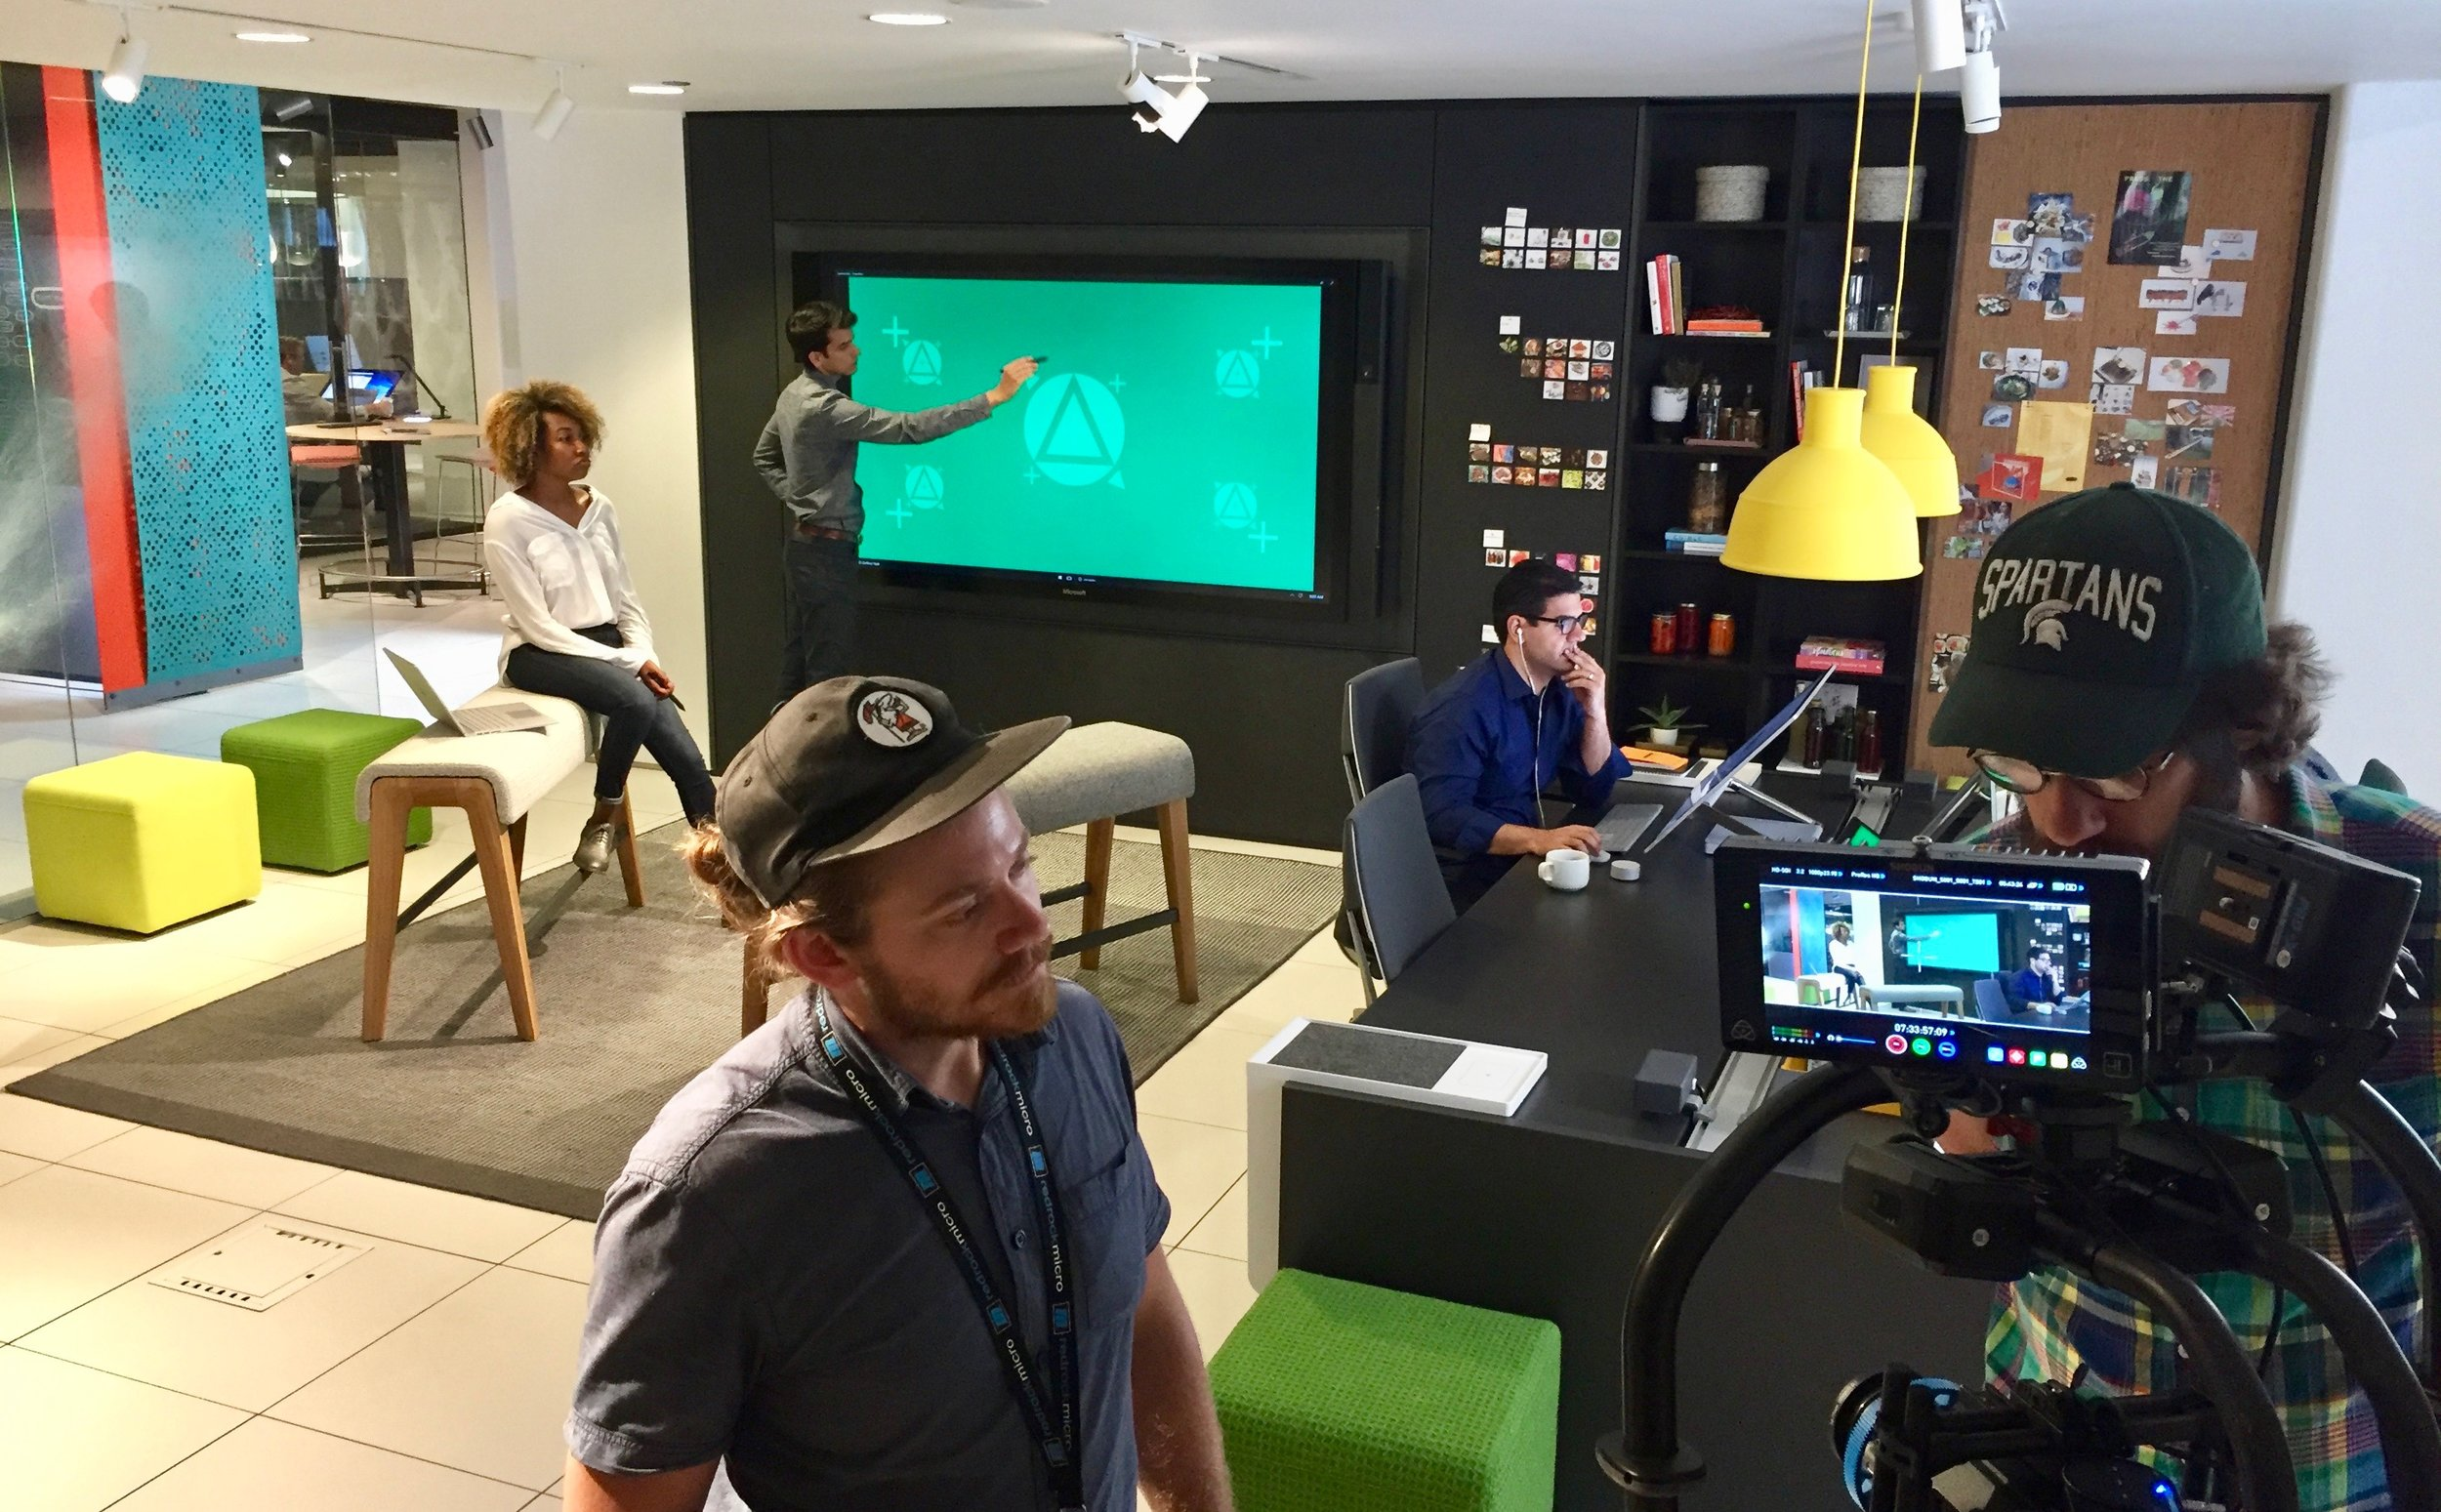 On Set in the Steelcase Chicago Showroom with partner Microsoft.